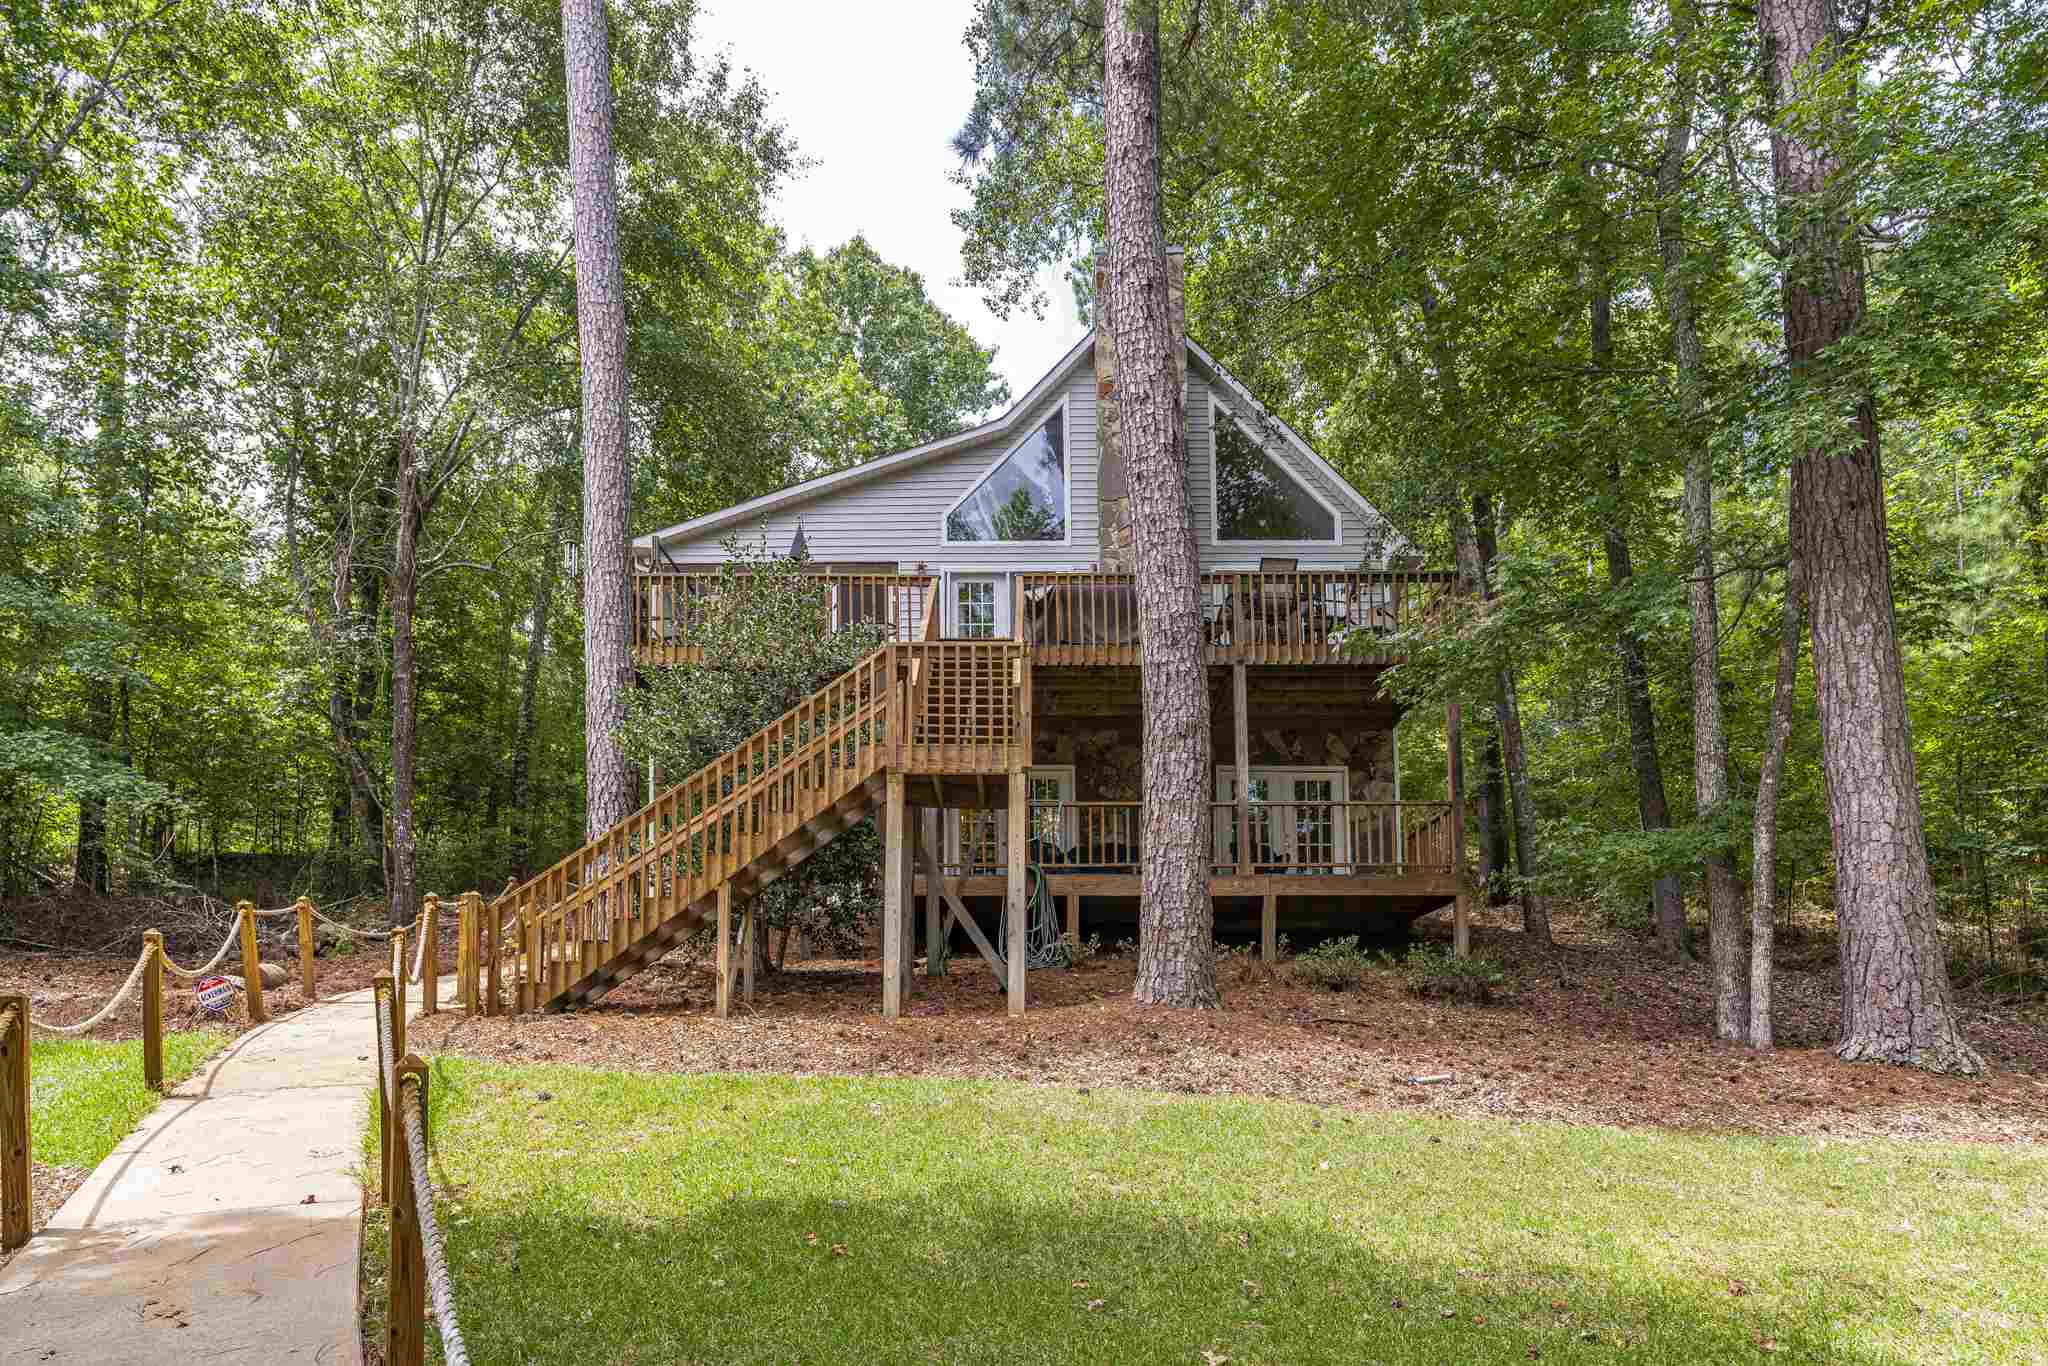 389 BLUEGILL ROAD, Lake Sinclair, Georgia